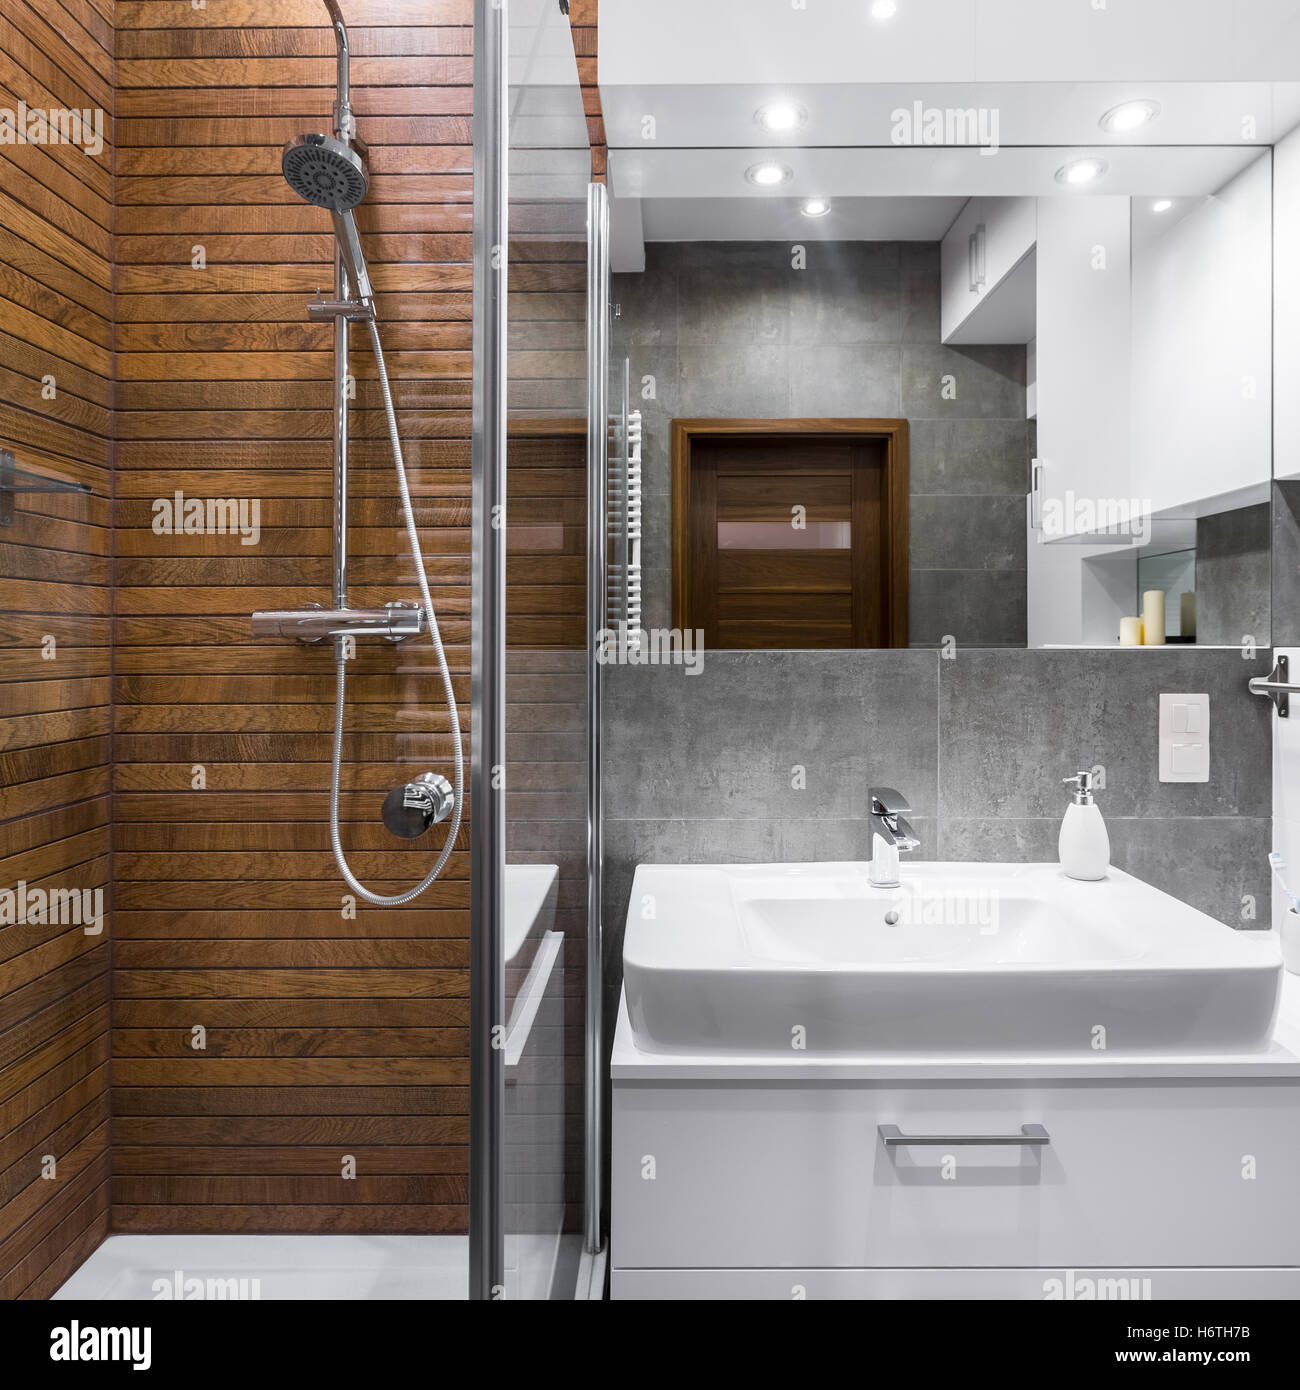 New style bathroom with wood effect tiles shower mirror and new style bathroom with wood effect tiles shower mirror and basin dailygadgetfo Gallery